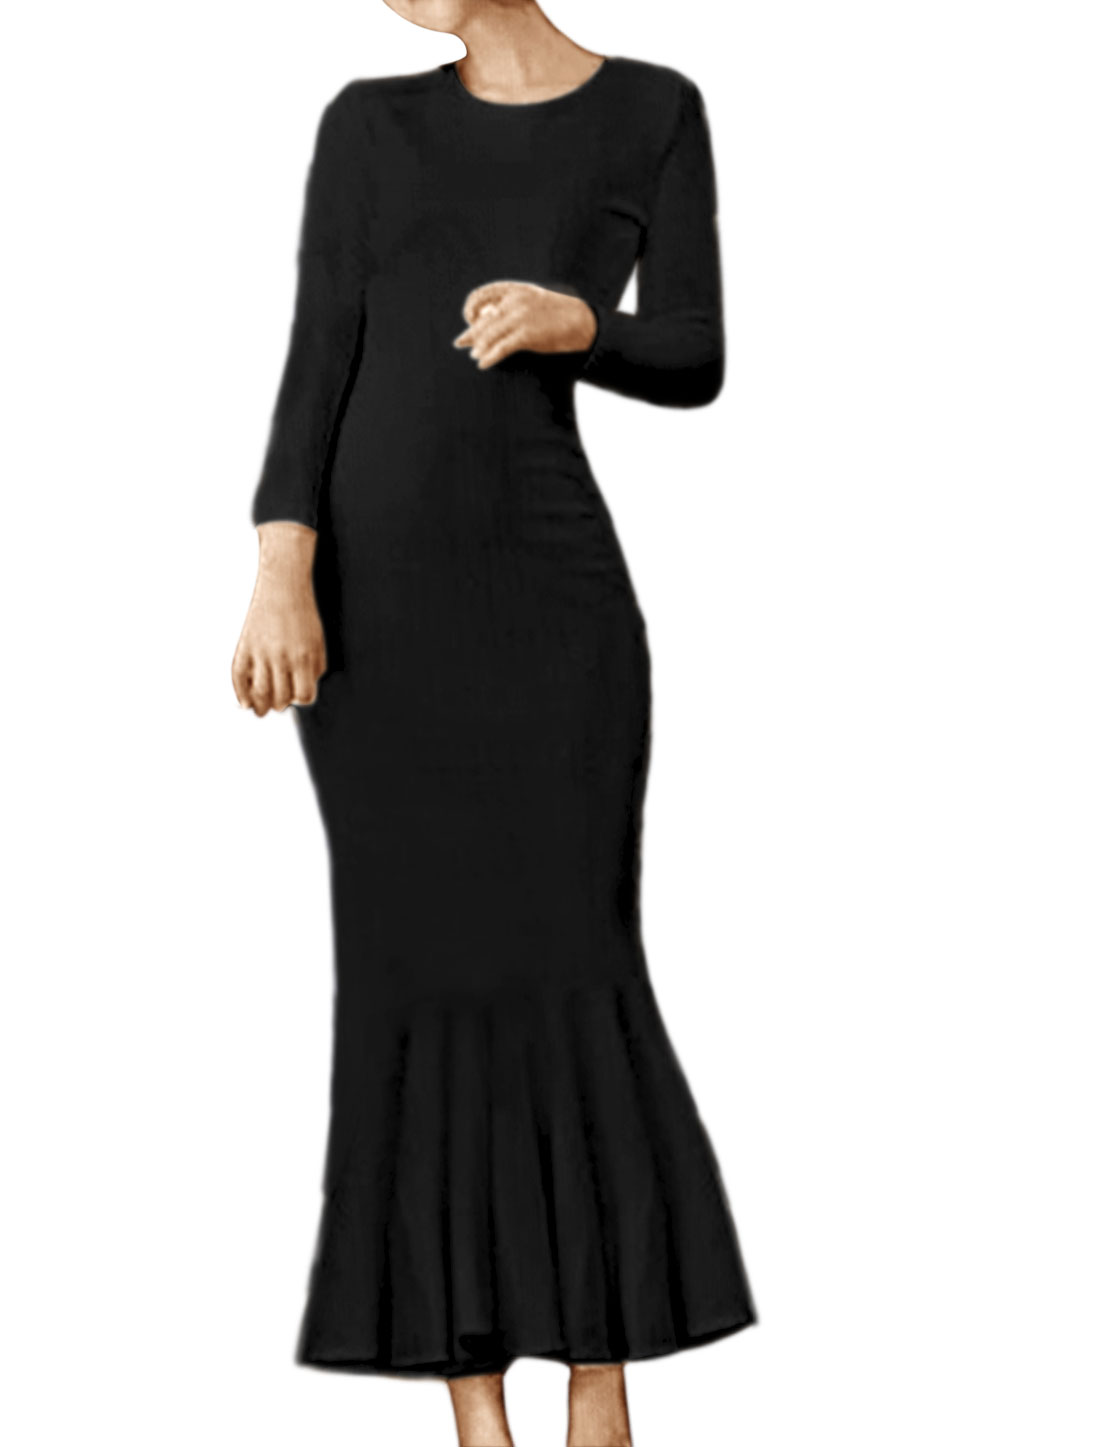 Women Long Sleeves Flouncing Hem Embossed Midi Dress Black XS